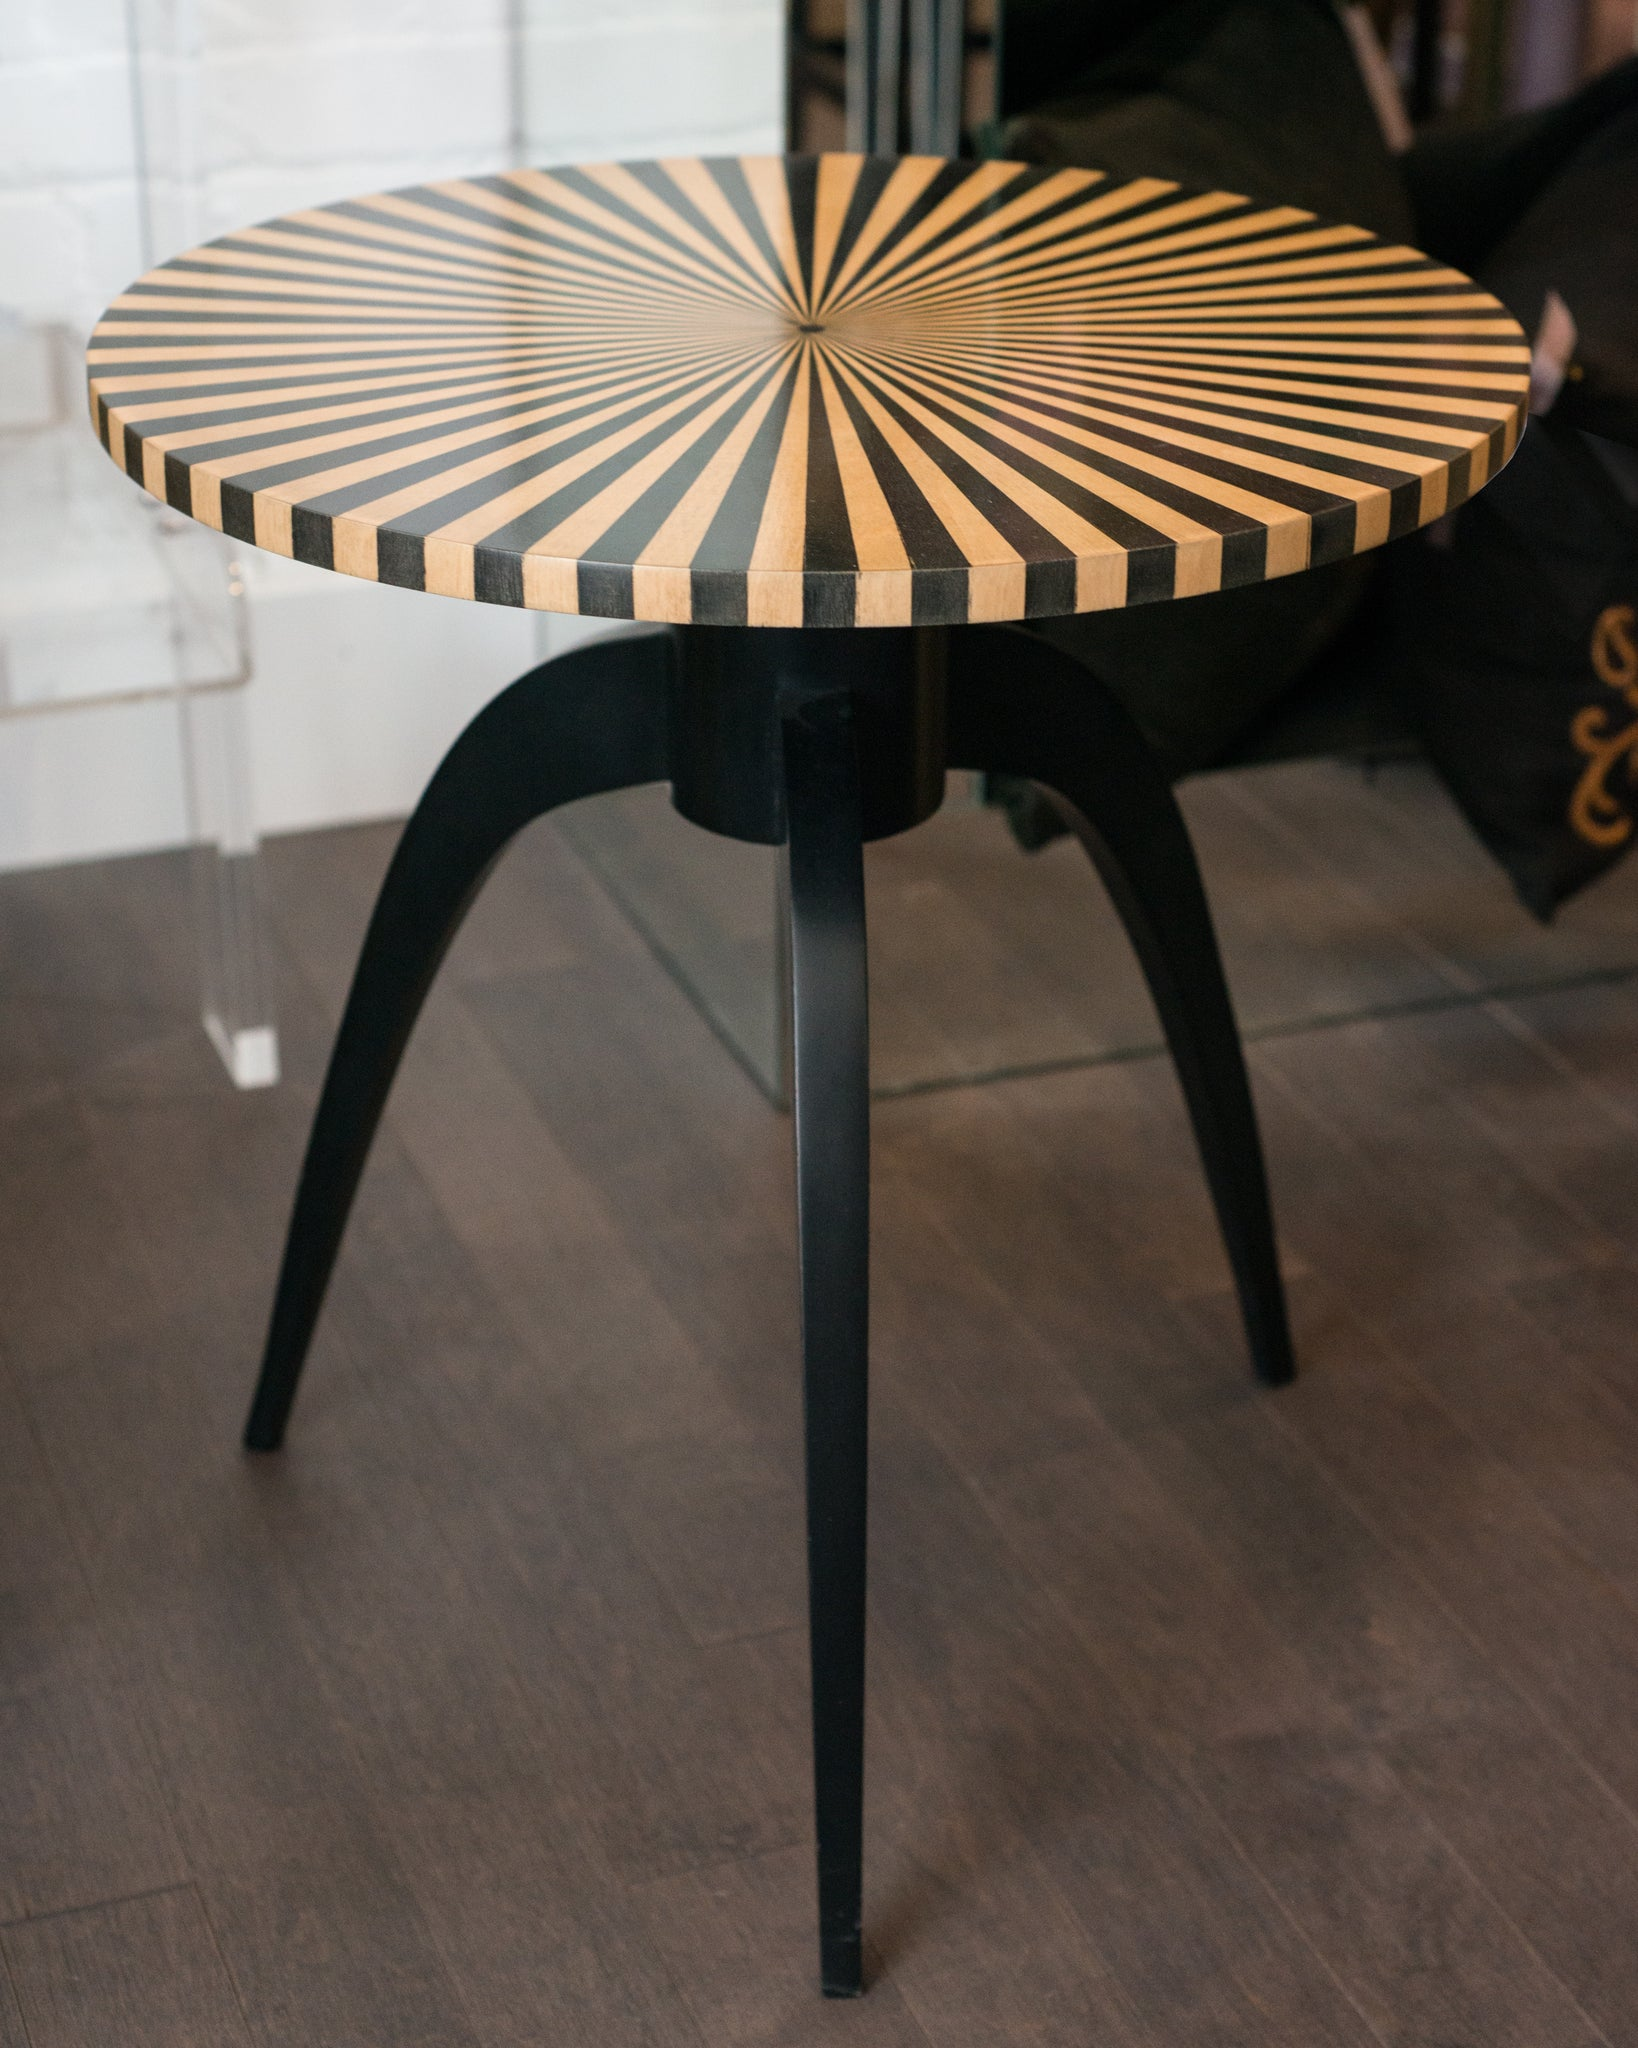 CONTEMPORARY SATINWOOD TABLE WITH BLACK LEGS